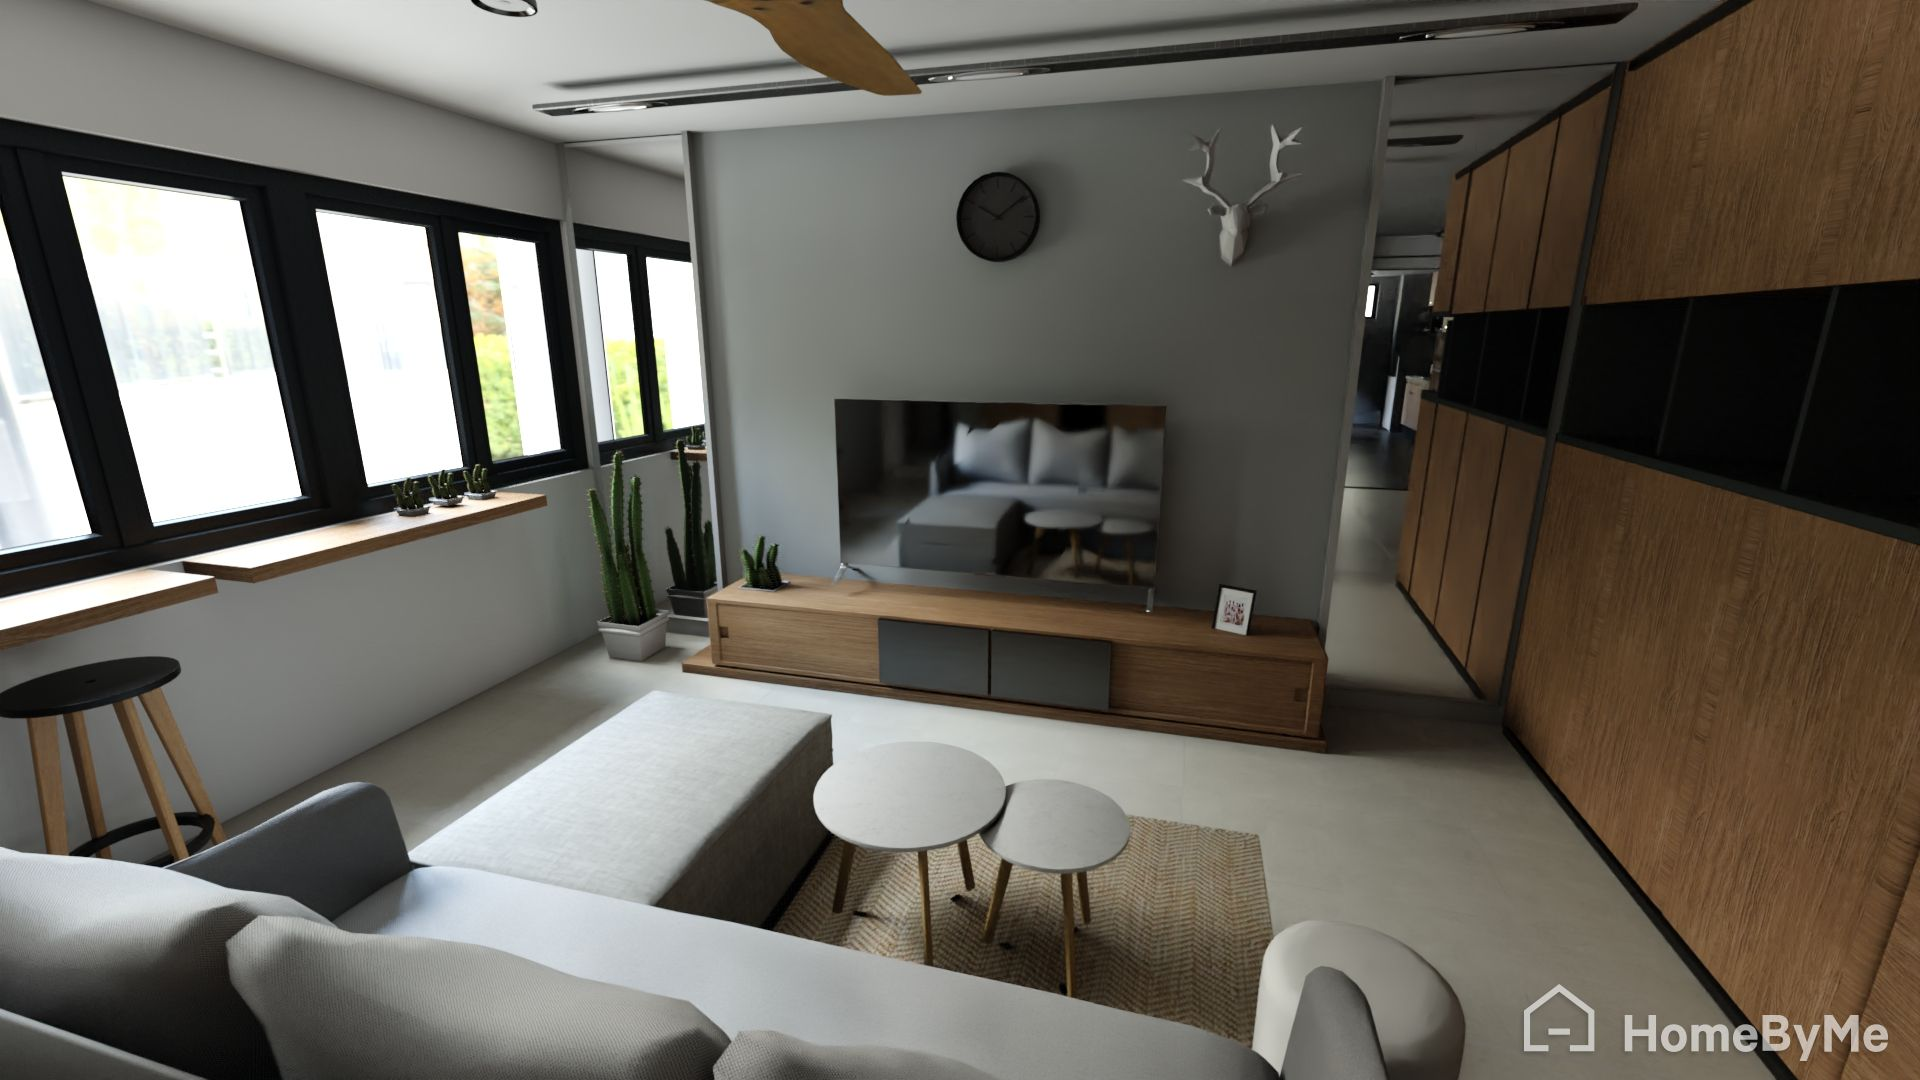 Living room with white couch and TV